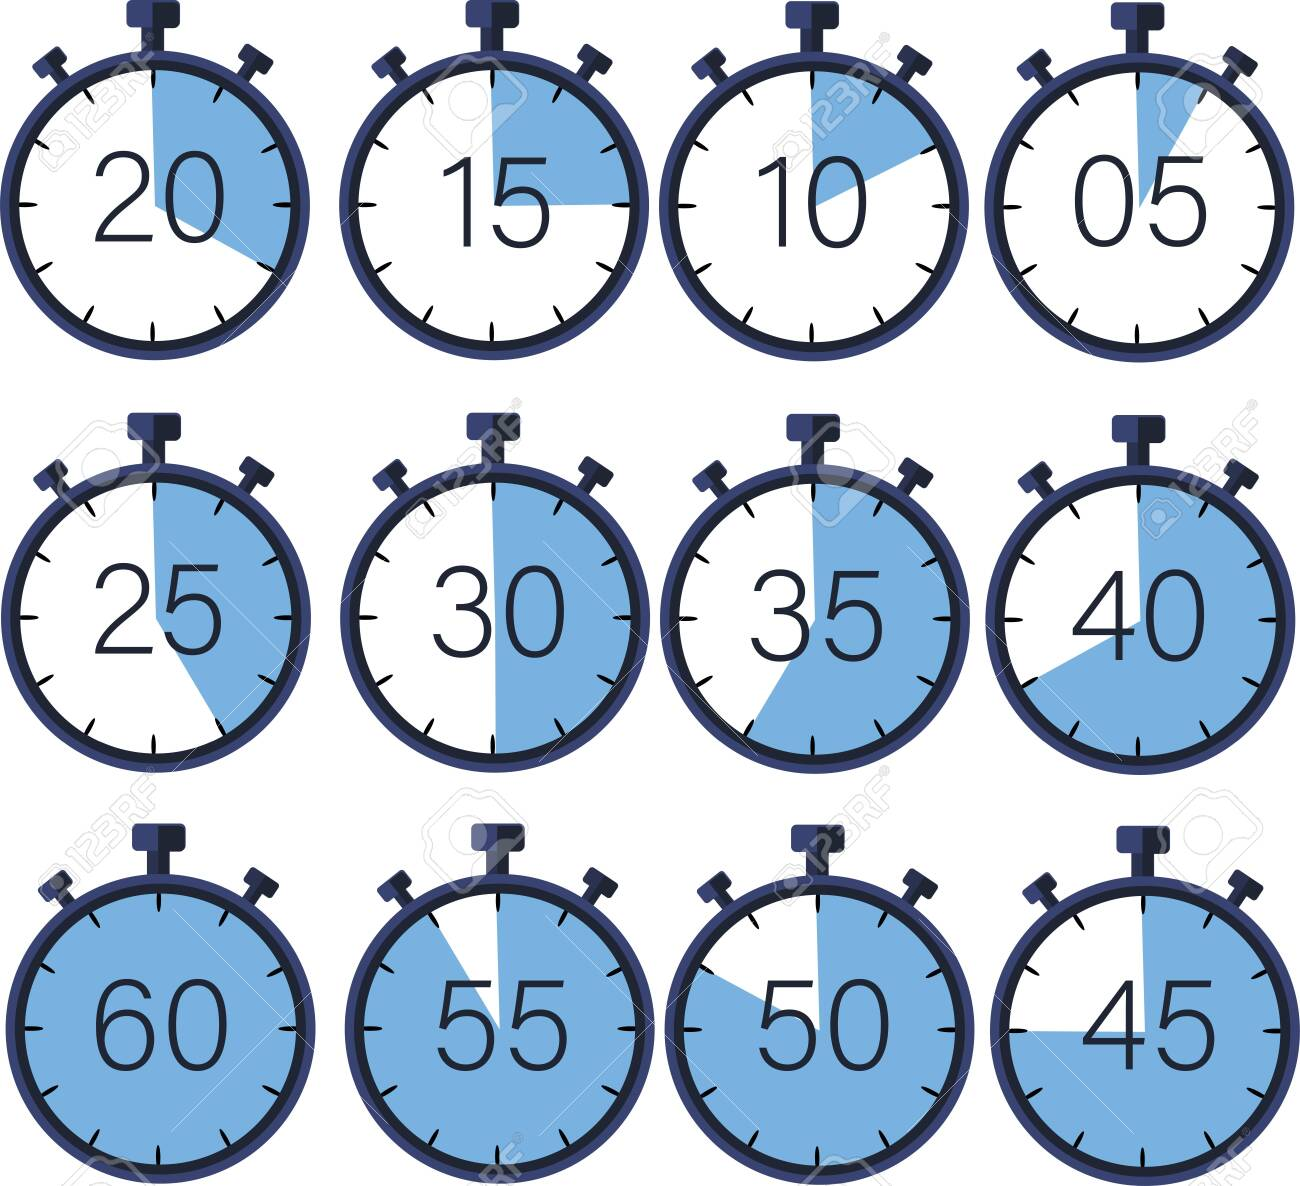 Manual stopwatch-chronograph, measurement in seconds. Ability to measure and calculate the time to reach the goal. Timer with a countdown 60,55,50,45,30,25,20,15,10,5 Vector image. - 155185259